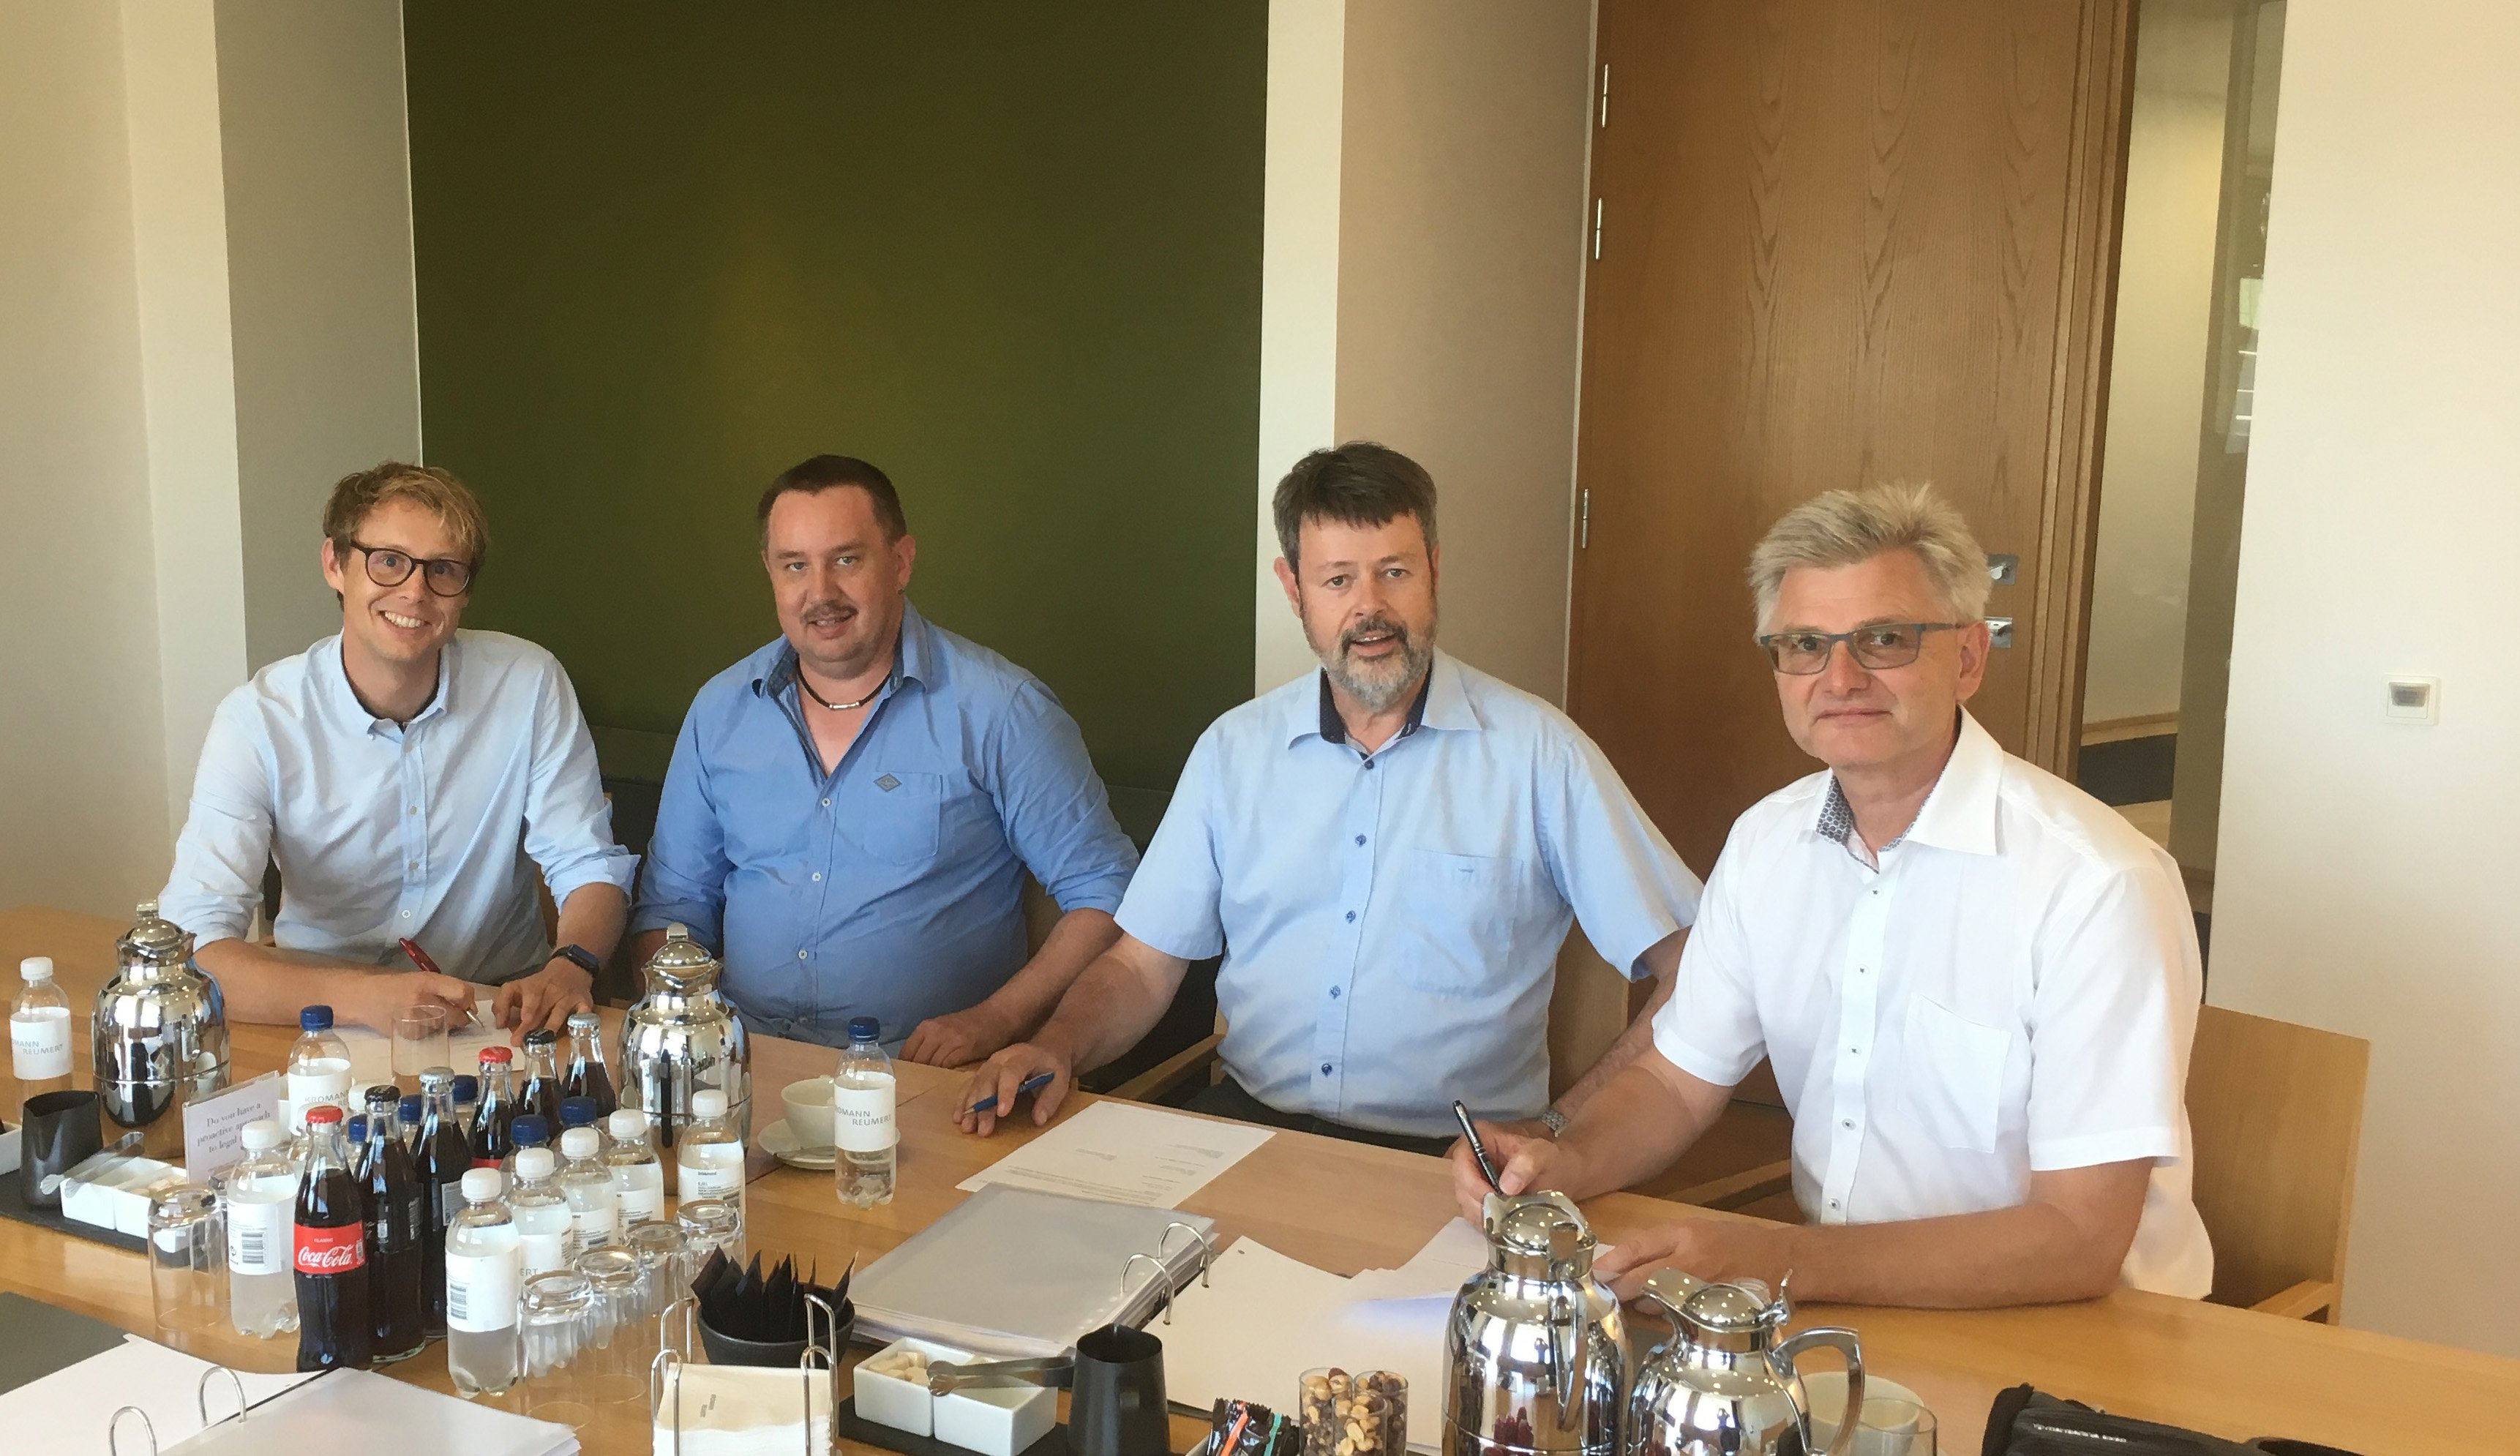 From left to right: Roland Ruf and Wolfgang Ruf, co-owners and managing directors of Ruf briquetting systems, signed the acquisition agreement along with Mogens S. Knudsen und Henning M. Larsen, the previous owners of C. F. Nielsen. All of them are happy about the fact that two companies, which share the same philosophy and values, are under one roof now. (Foto: Ruf)